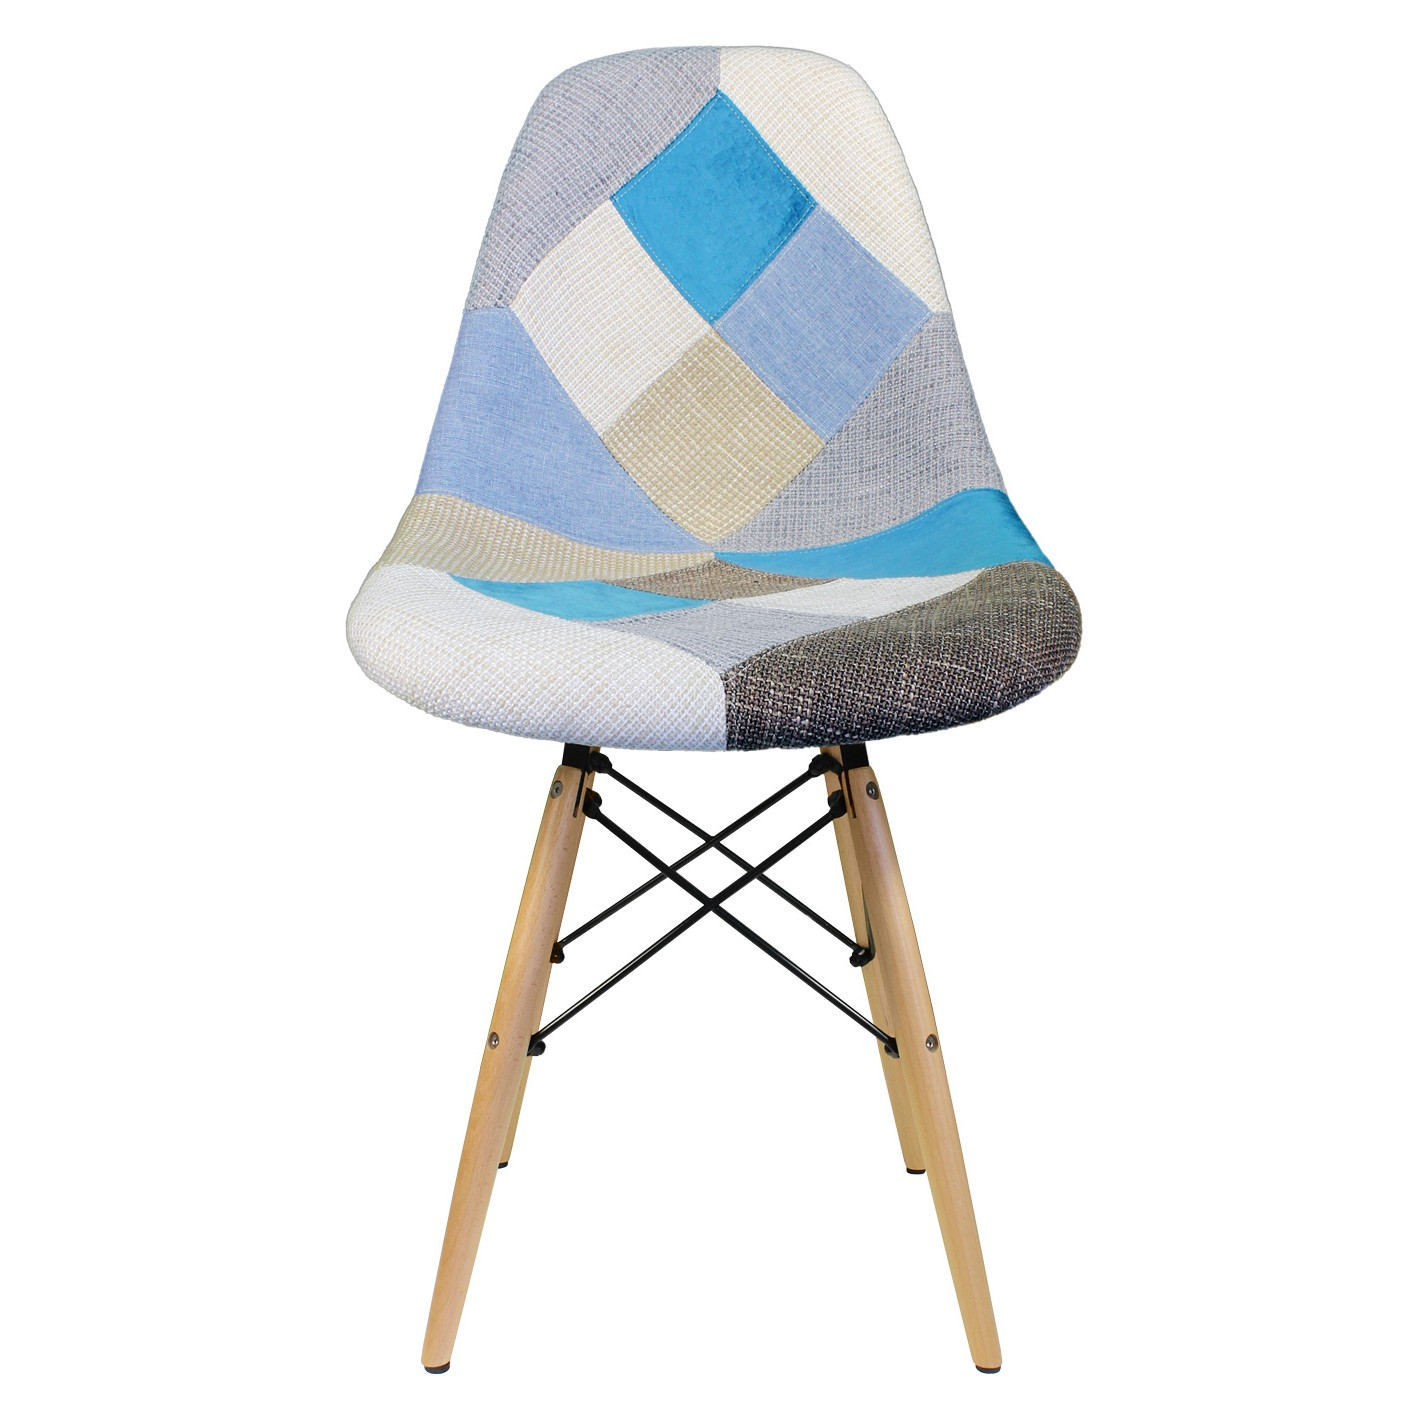 Patchwork Fabric Upholstered Mid Century Eames Style  : dsw fab patchwork4 from www.emoderndecor.com size 1418 x 1418 jpeg 210kB